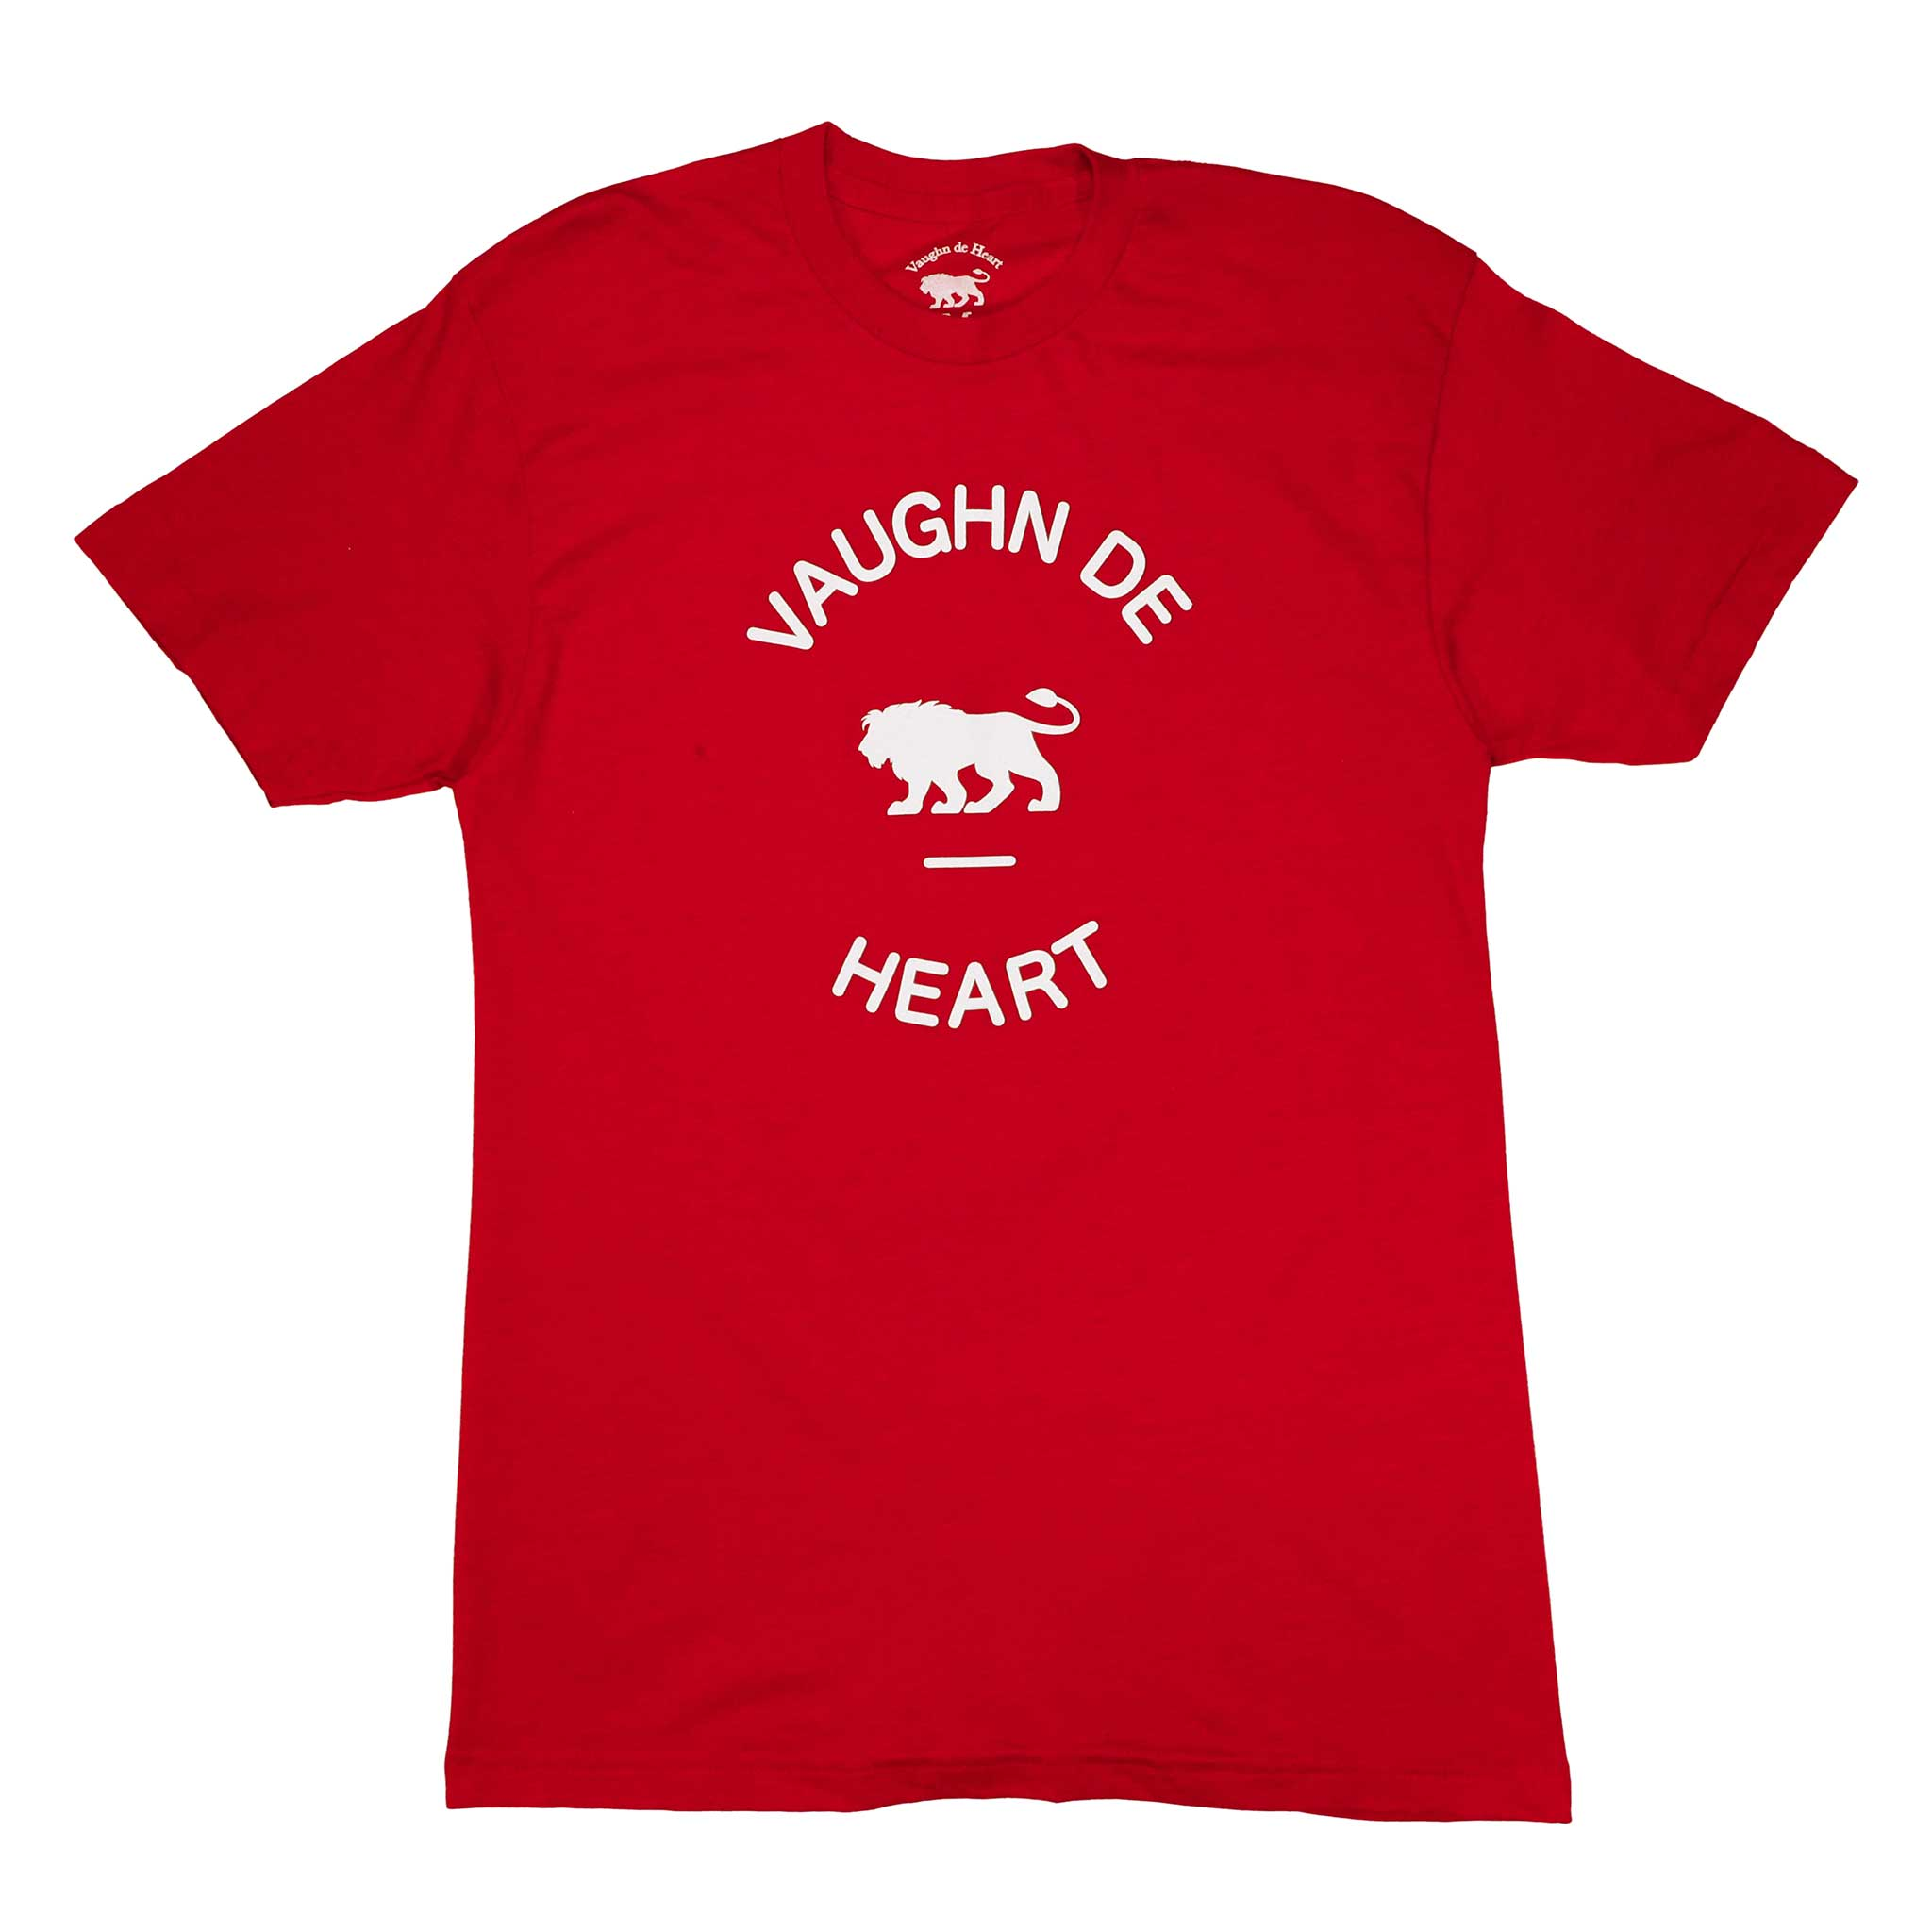 Circle Lion T Shirt - Vaughn de Heart